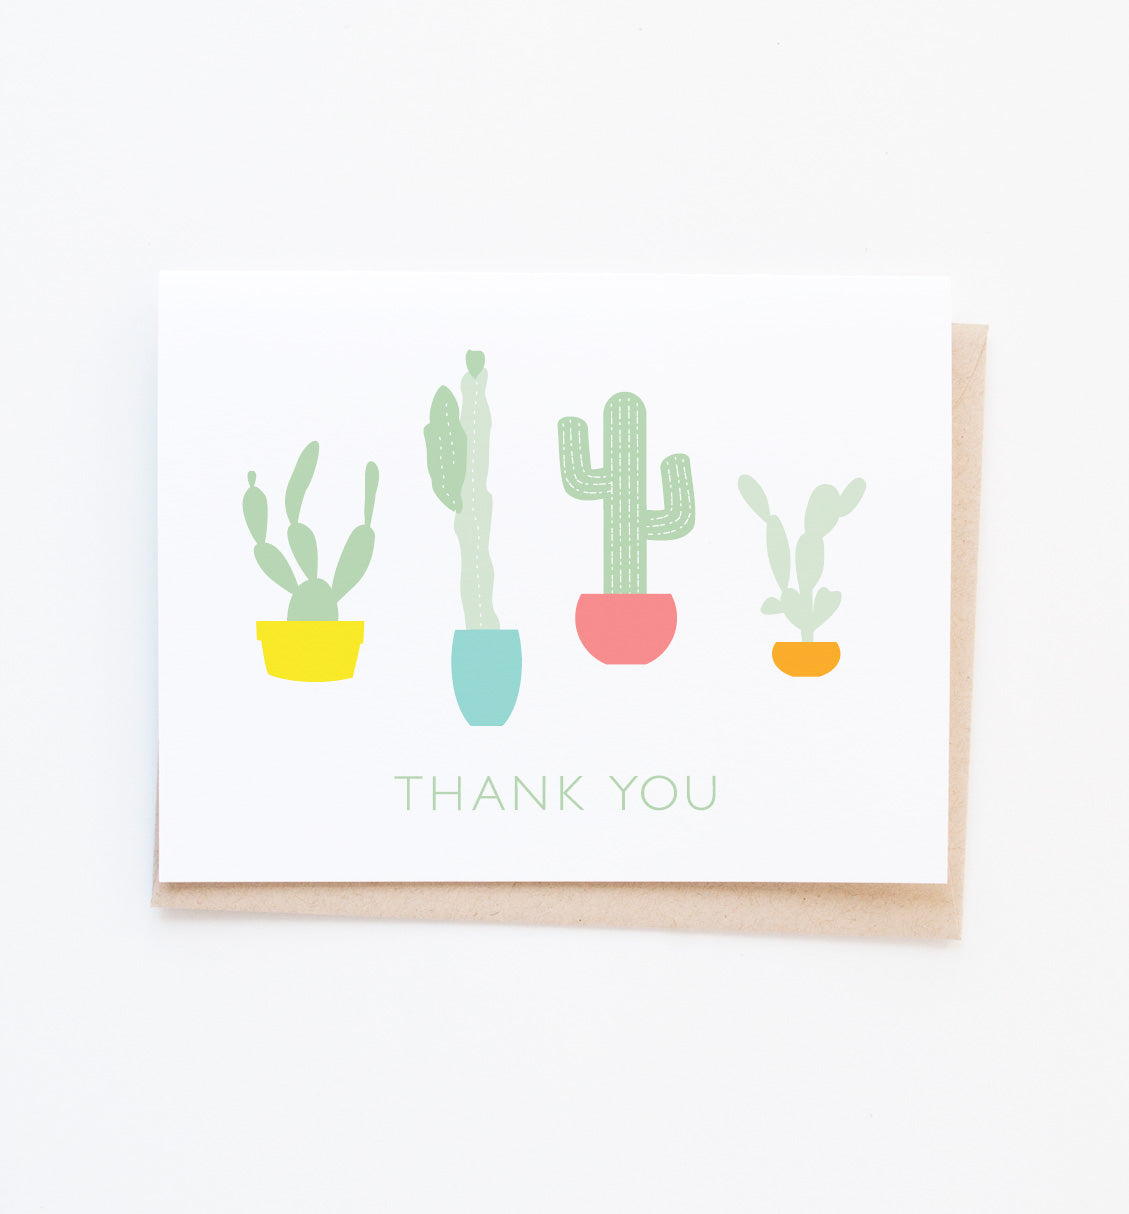 Cacti thank you card